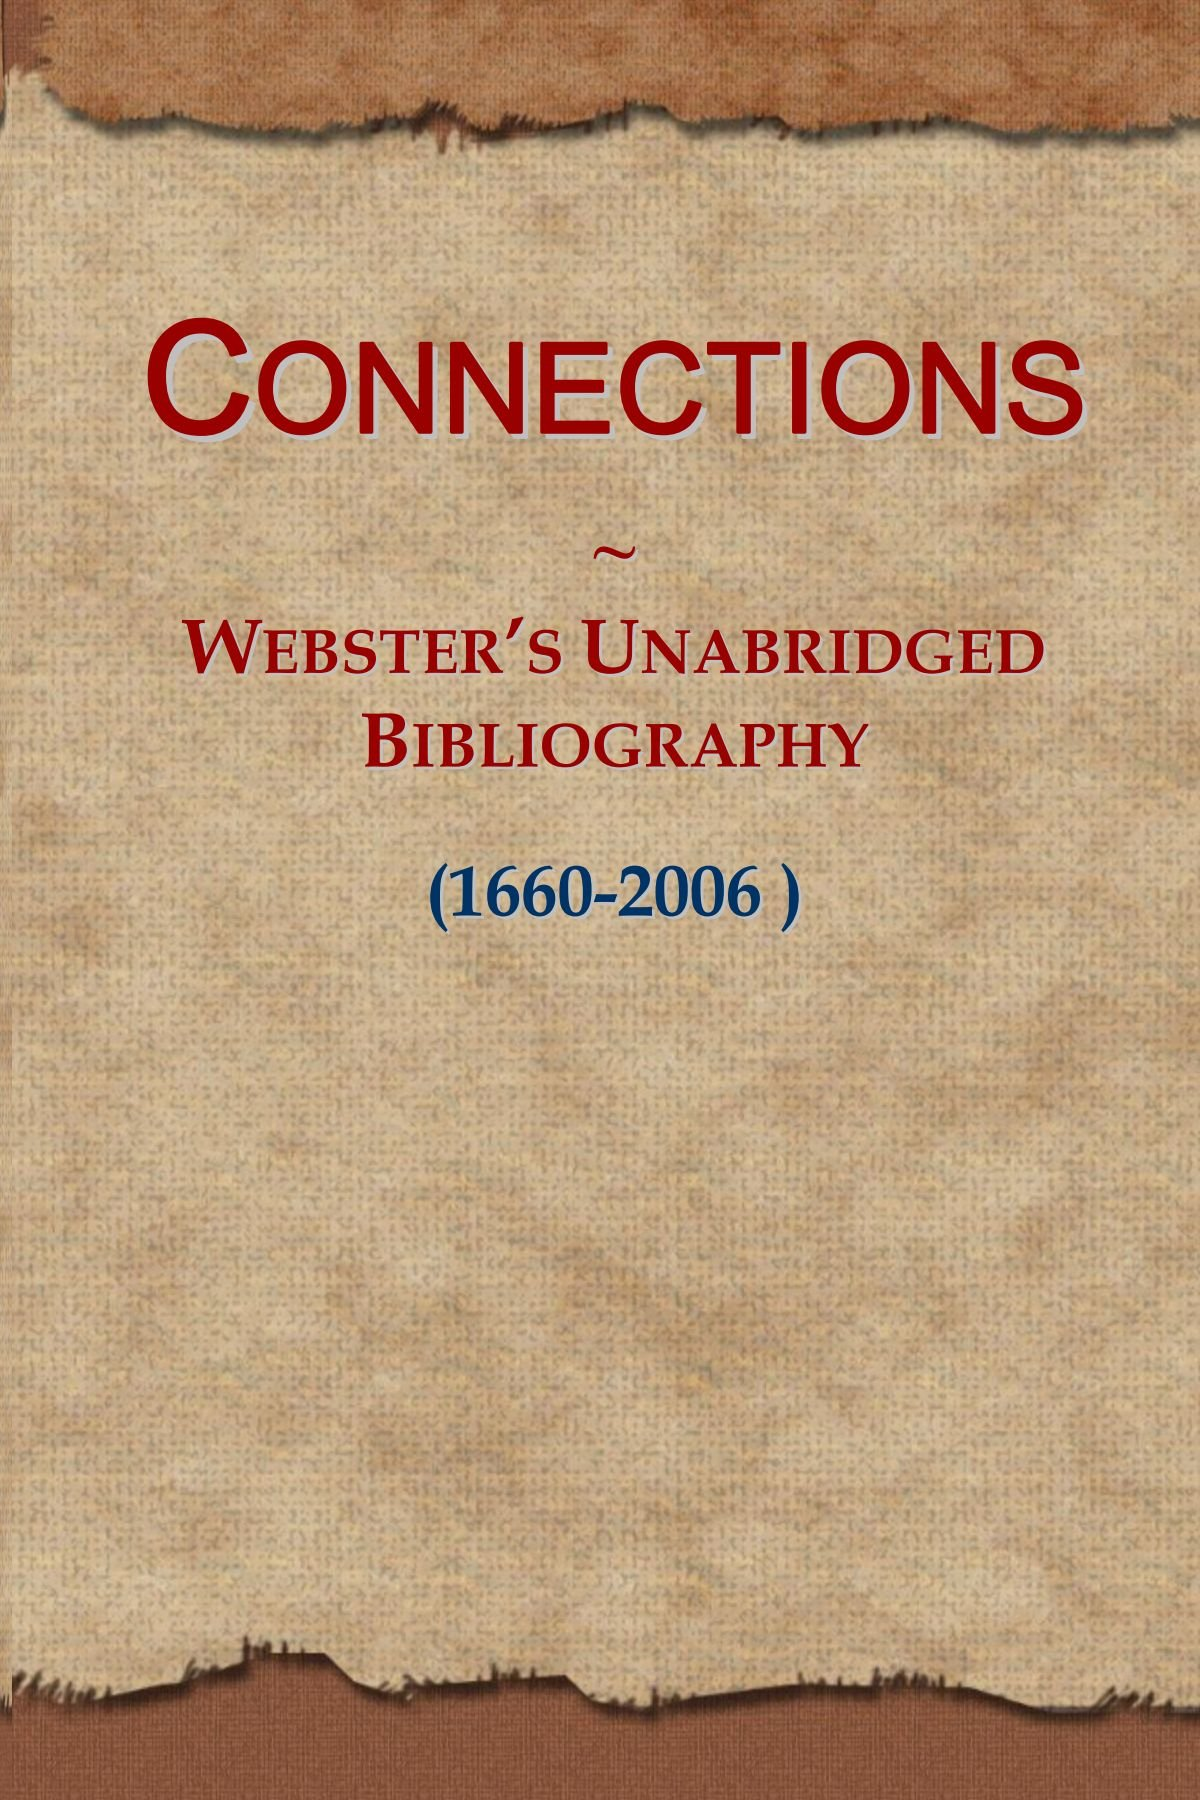 Connections: Webster's Unabridged Bibliography (1660-2006